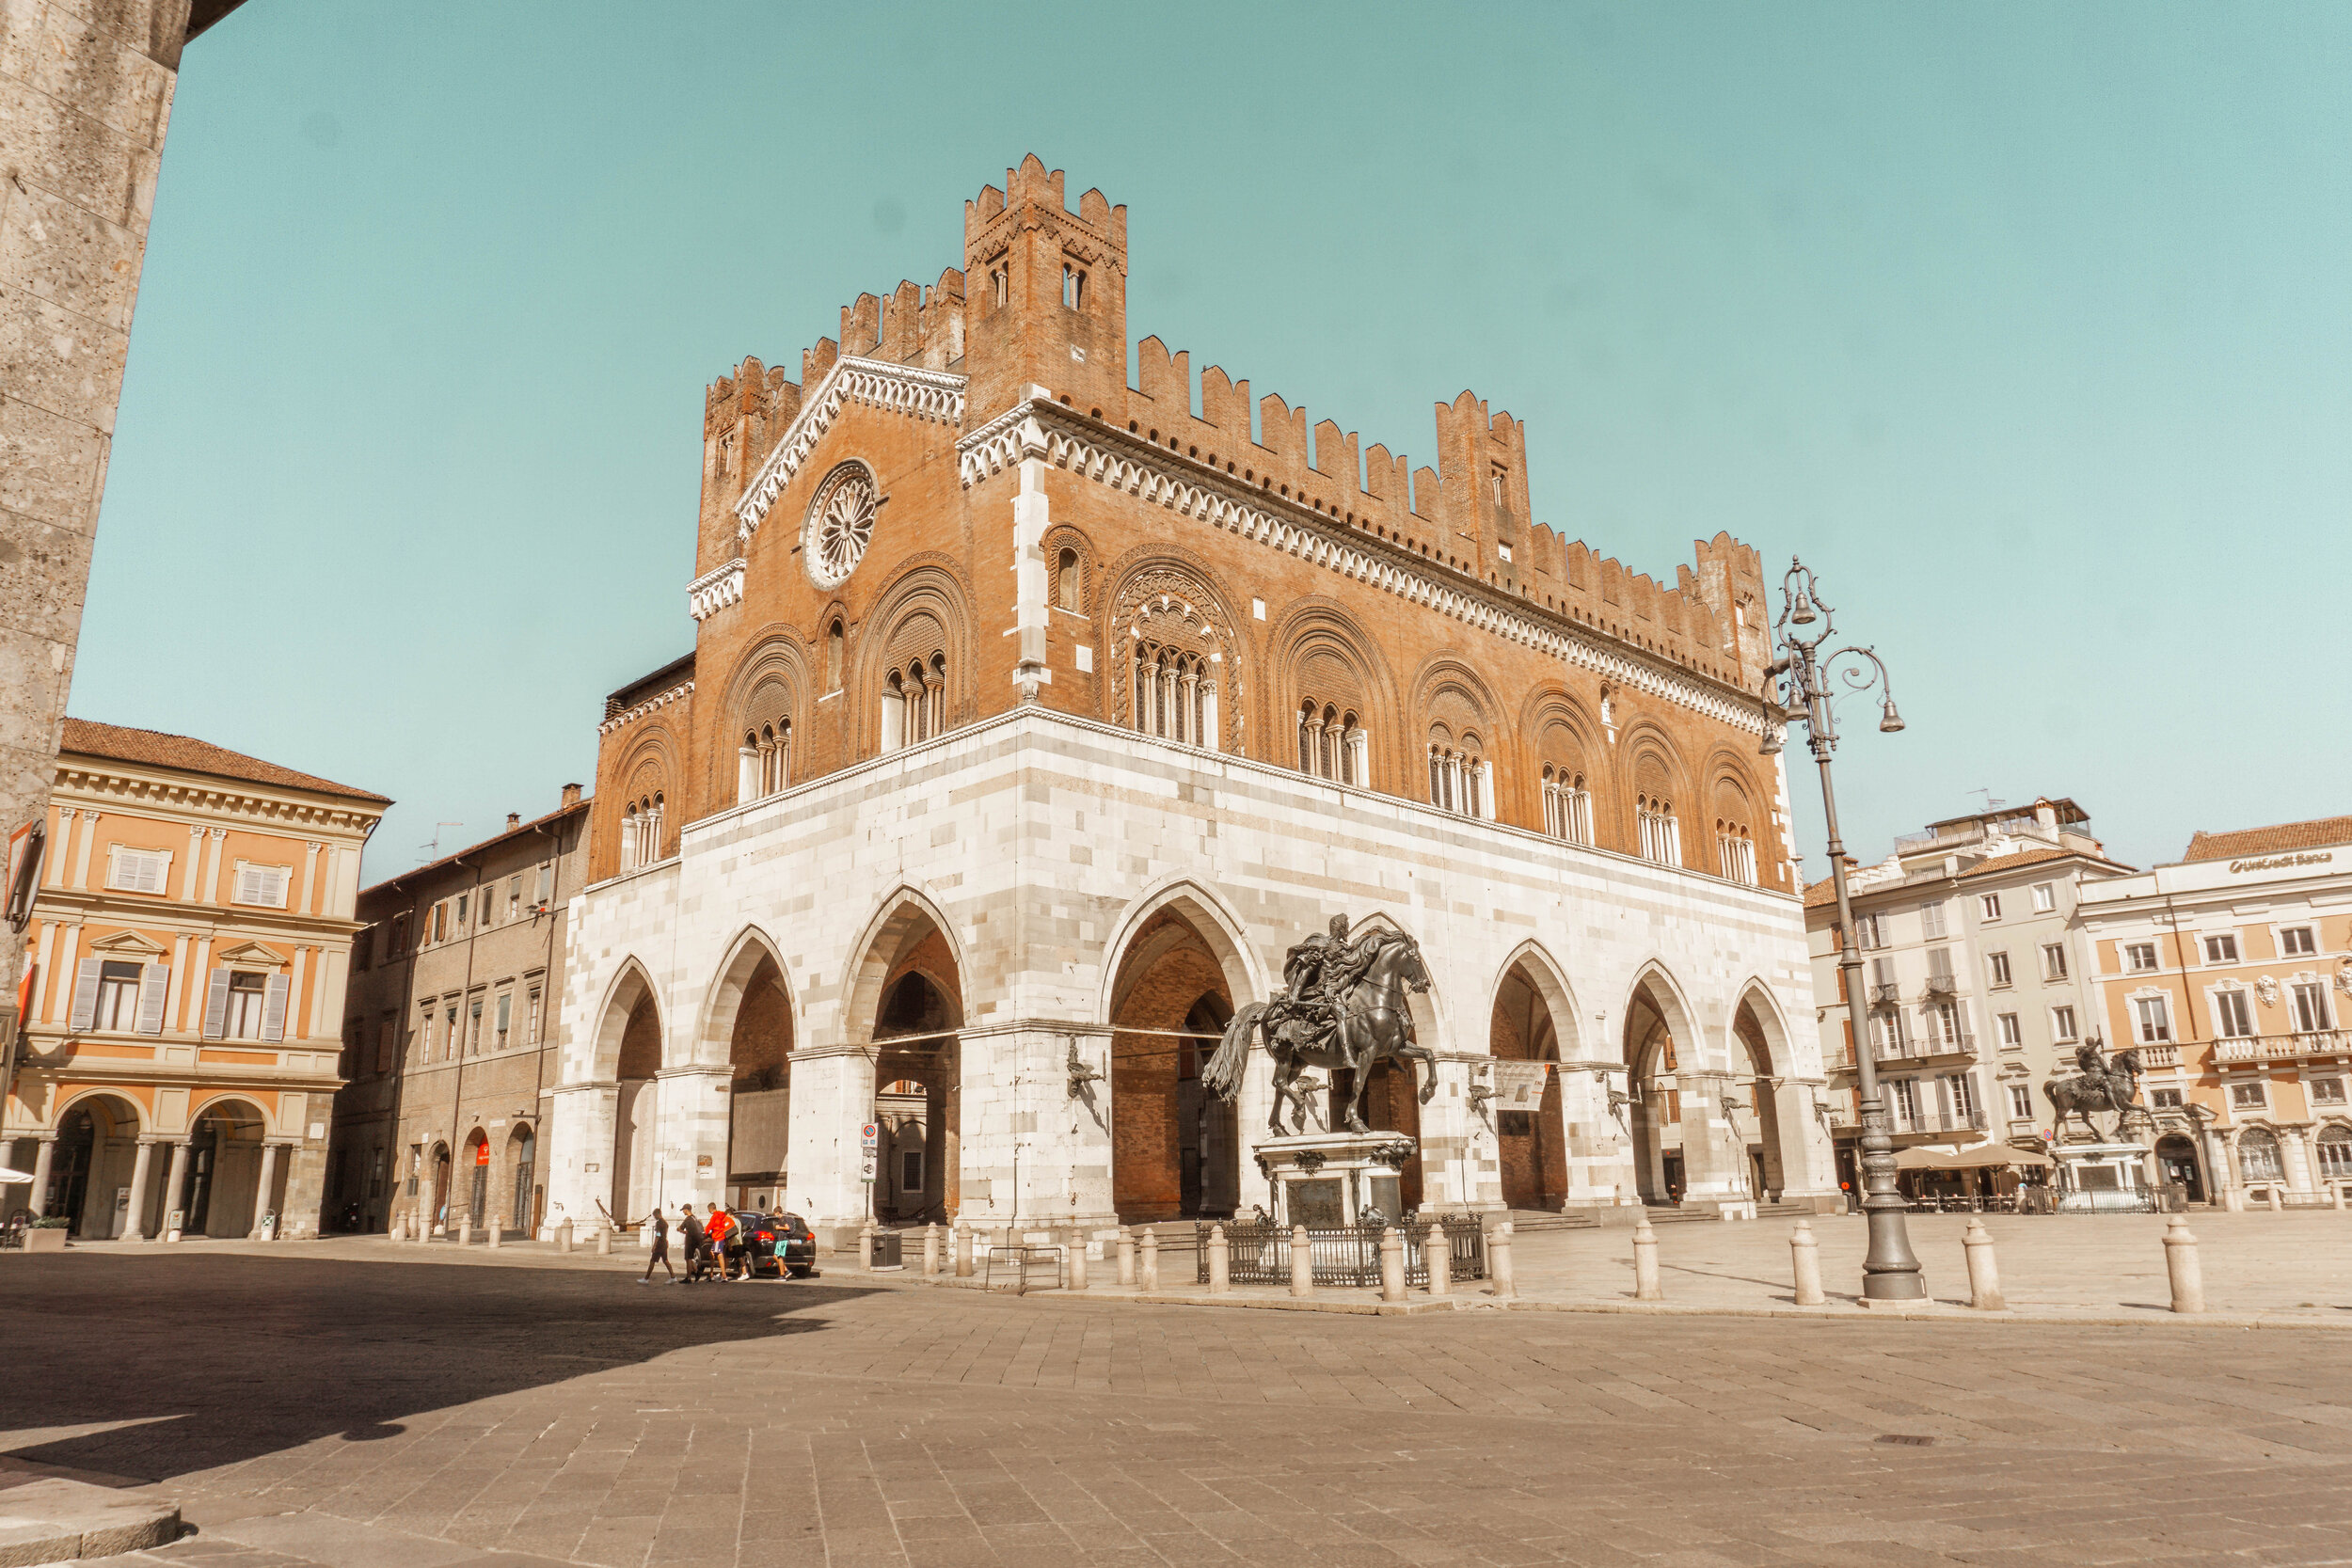 In addition to delicious food, Piacenza offers beautiful historic sights like this main square.